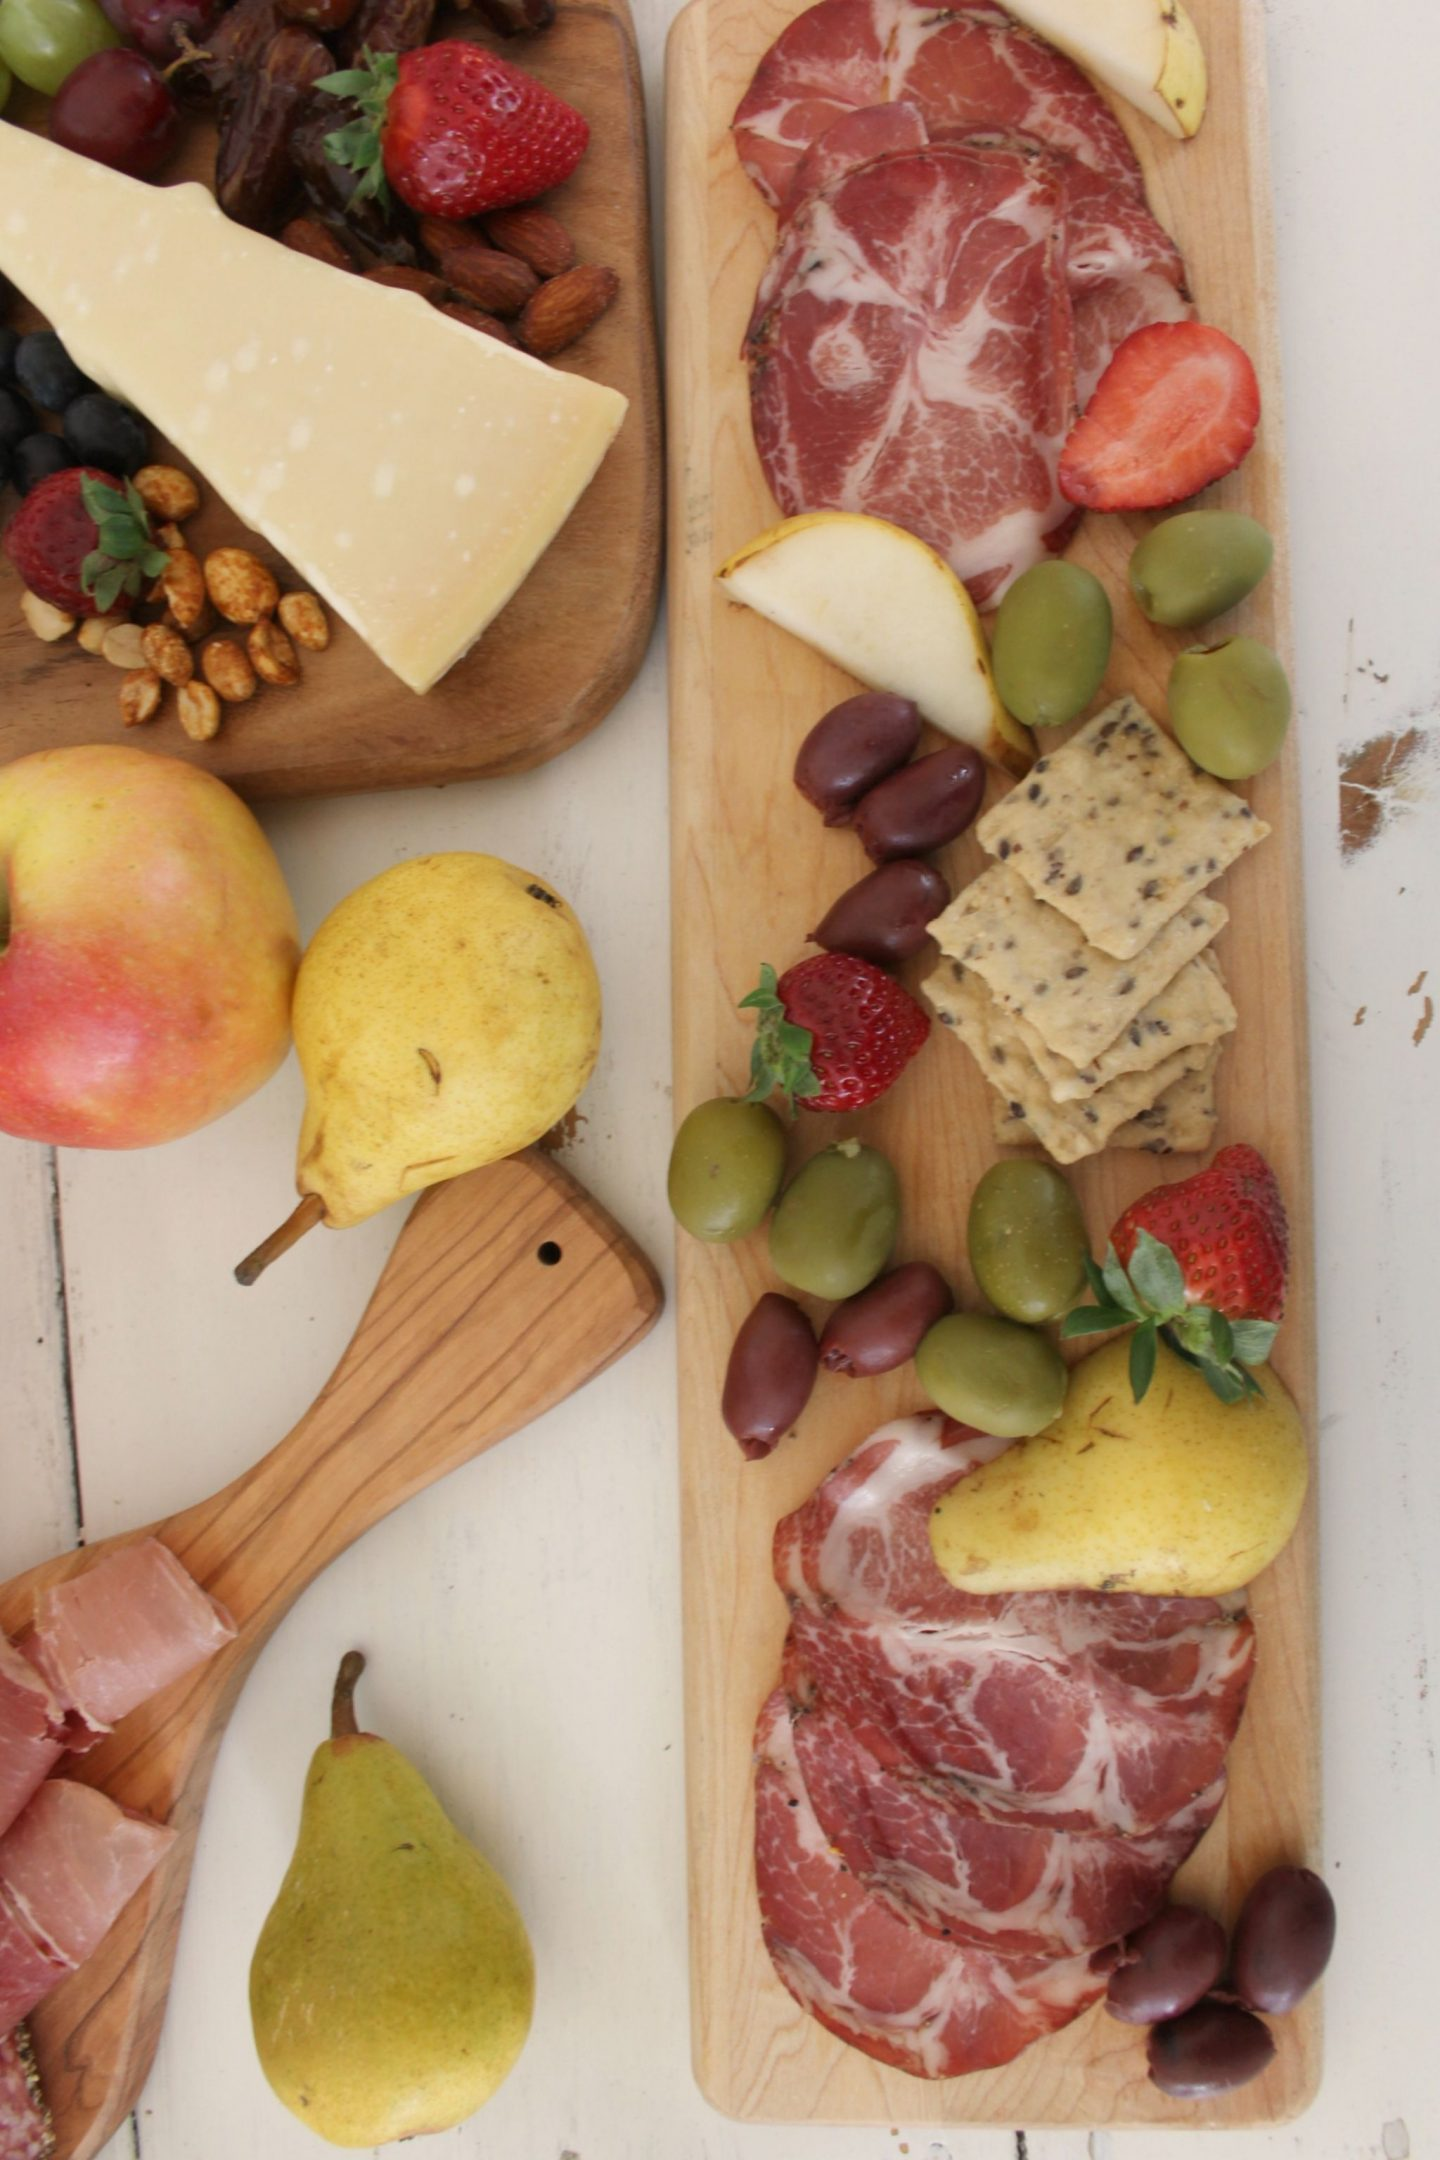 Beautiful colorful charcuterie and cheese platters with apples and pears by Hello Lovely Studio